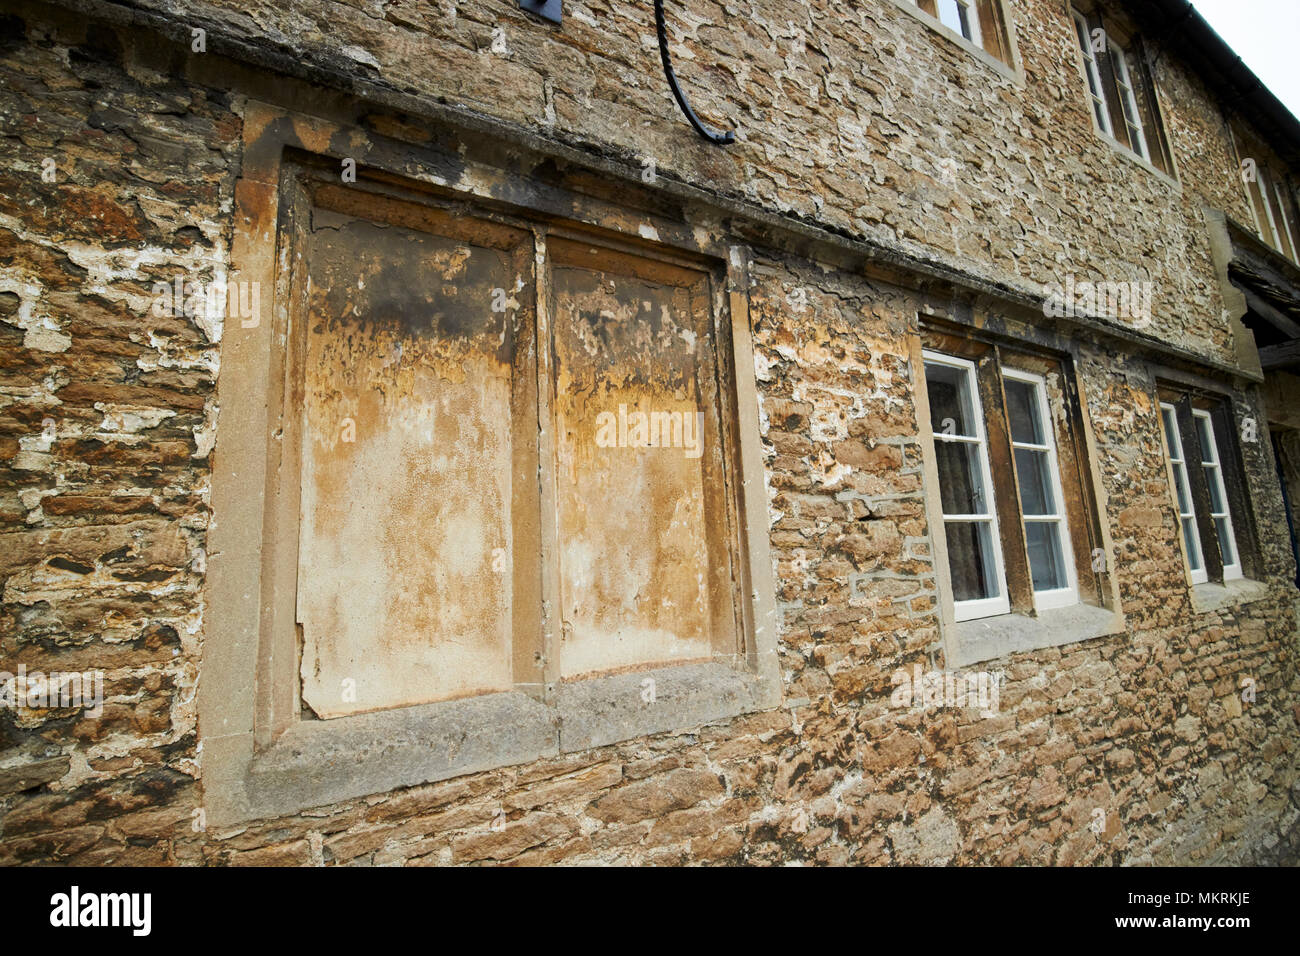 windows blocked up to avoid the window tax where the phrase daylight robbery comes from Lacock village wiltshire england uk - Stock Image